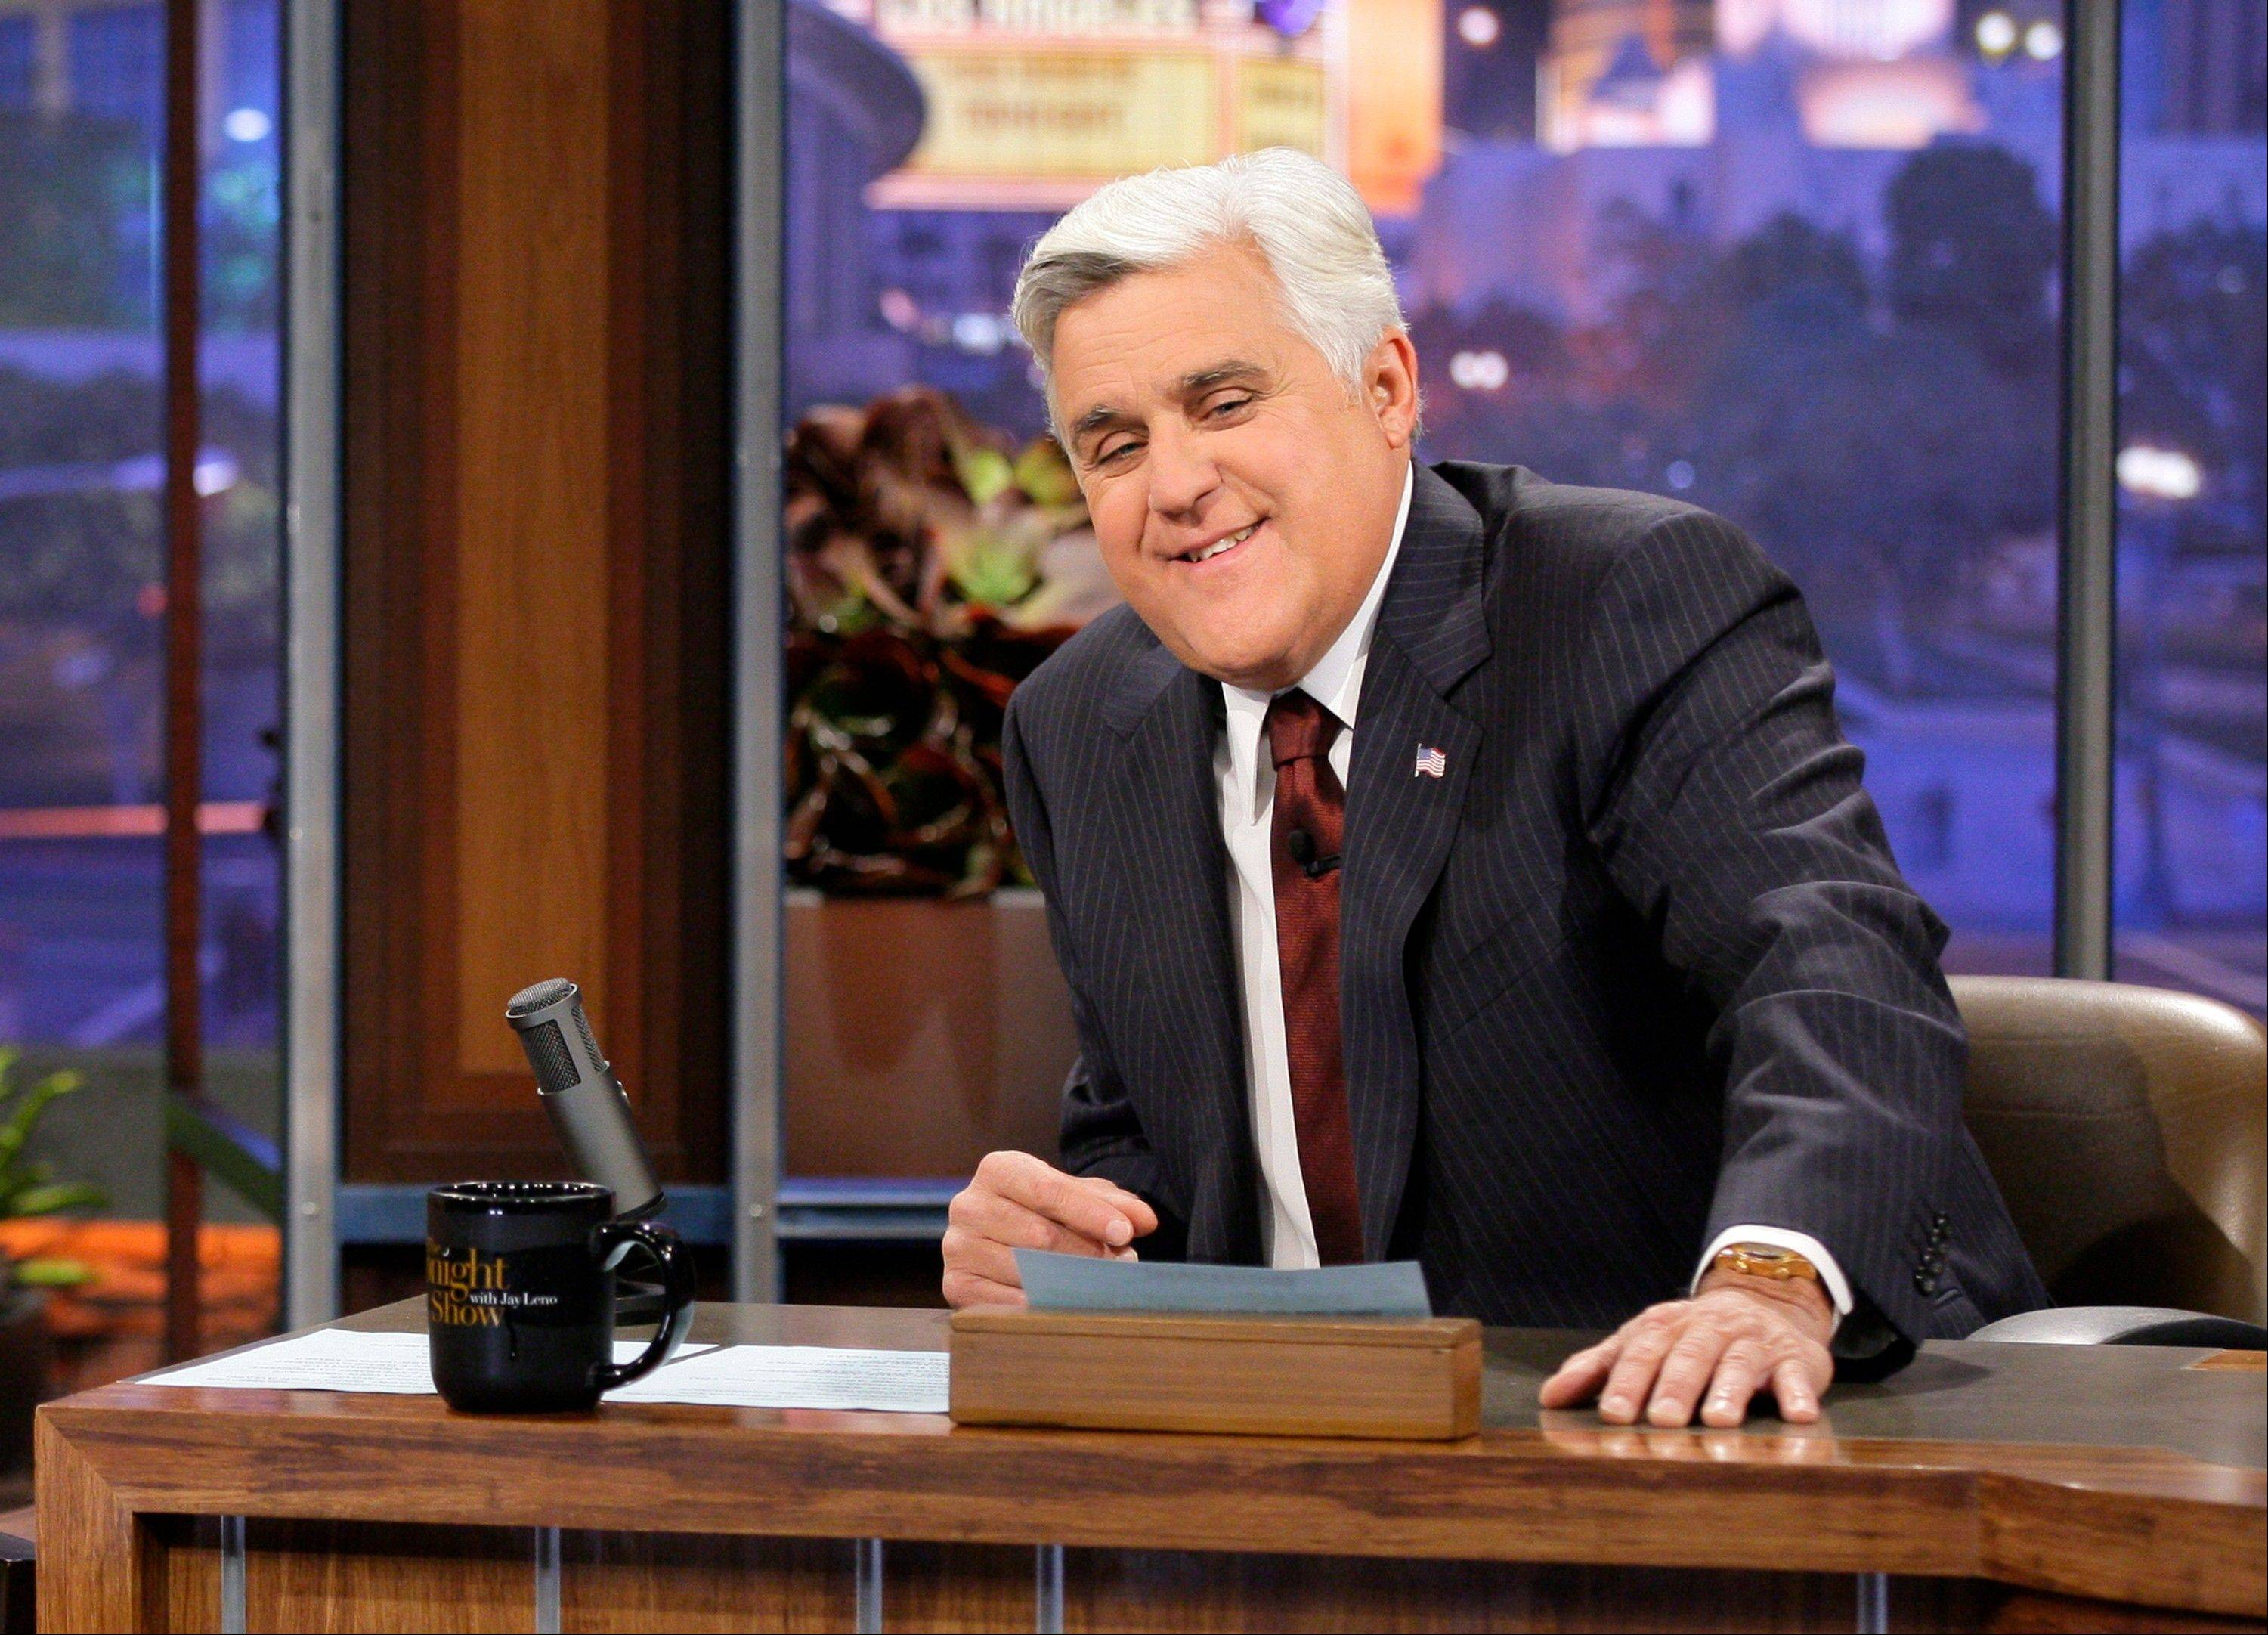 Jay Leno, host of �The Tonight Show with Jay Leno,� will end his 22-year run as host the first week of February. His successor Jimmy Fallon will be one of his last guests and Billy Crystal, who was Leno�s first guest, will fill the last guest slot on Feb. 6.